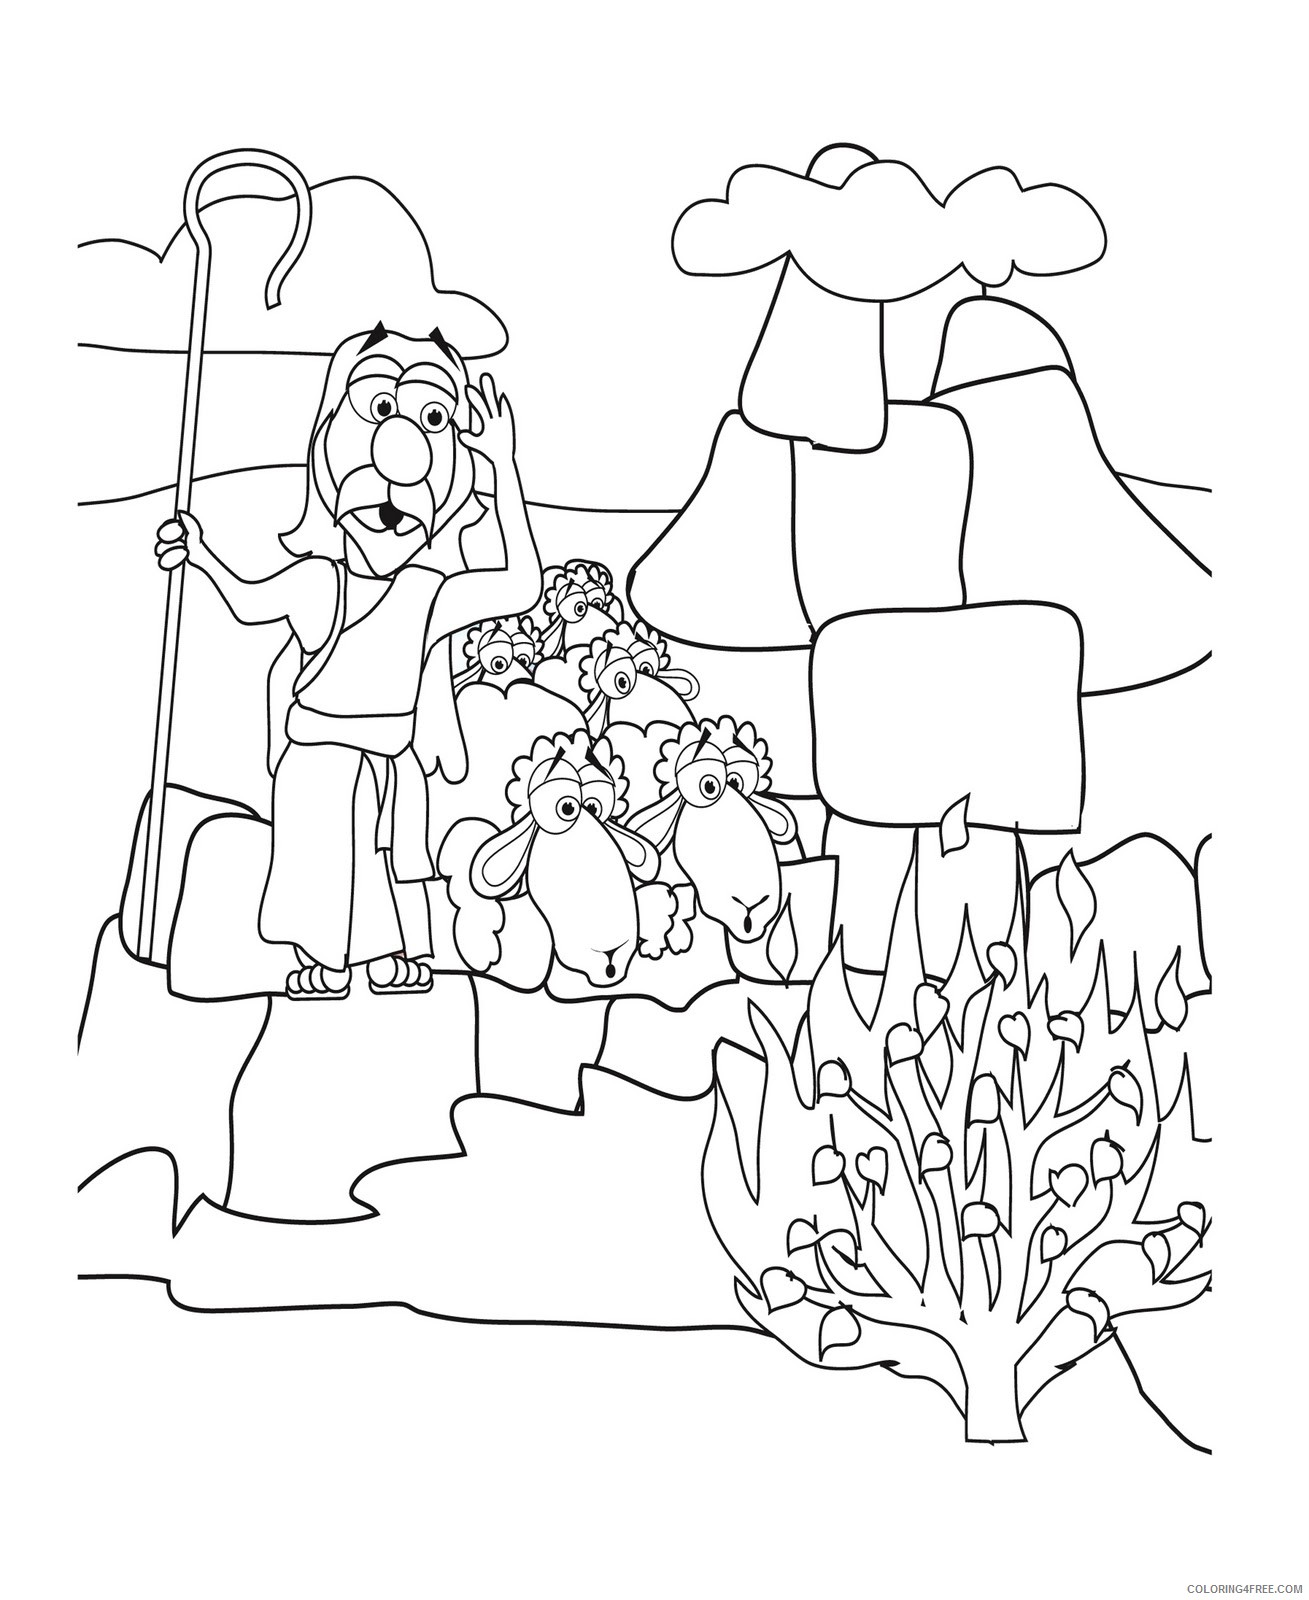 moses coloring pages for kids Coloring4free